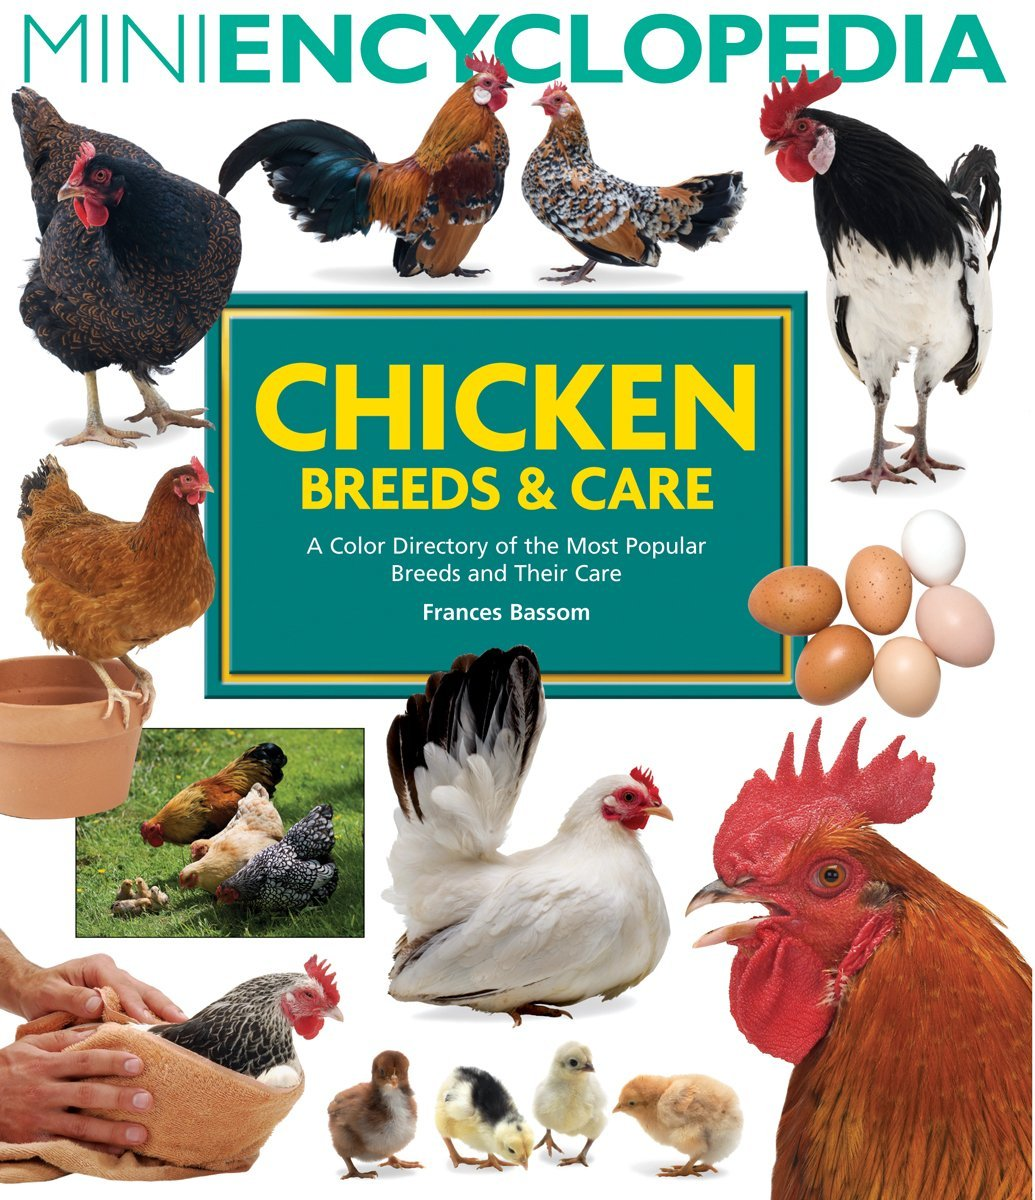 Mini Encyclopedia of Chicken Breeds and Care: A Color Directory of the Most Popular Breeds and Their Care